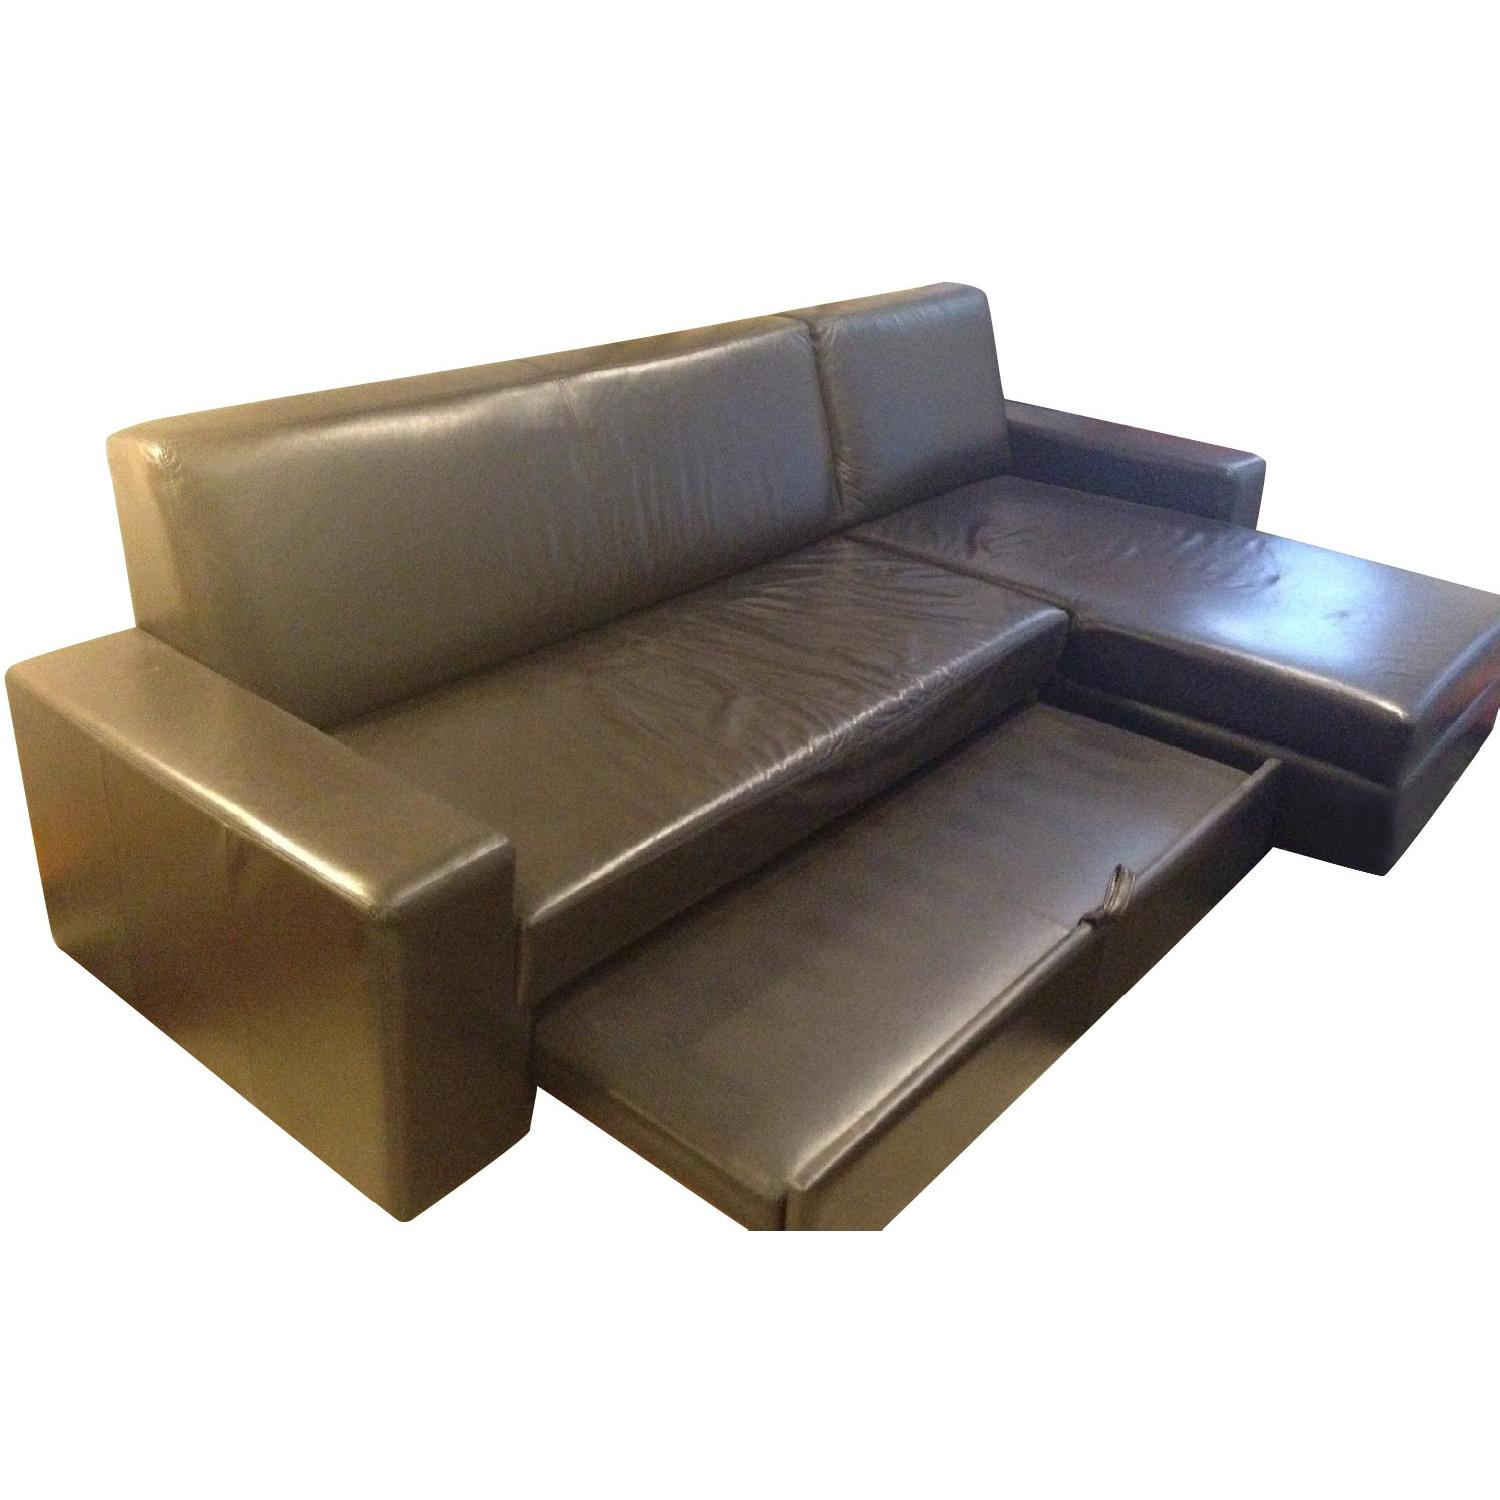 MDC Furniture Espresso L-Shape Leather Pull-Out Couch - image-0